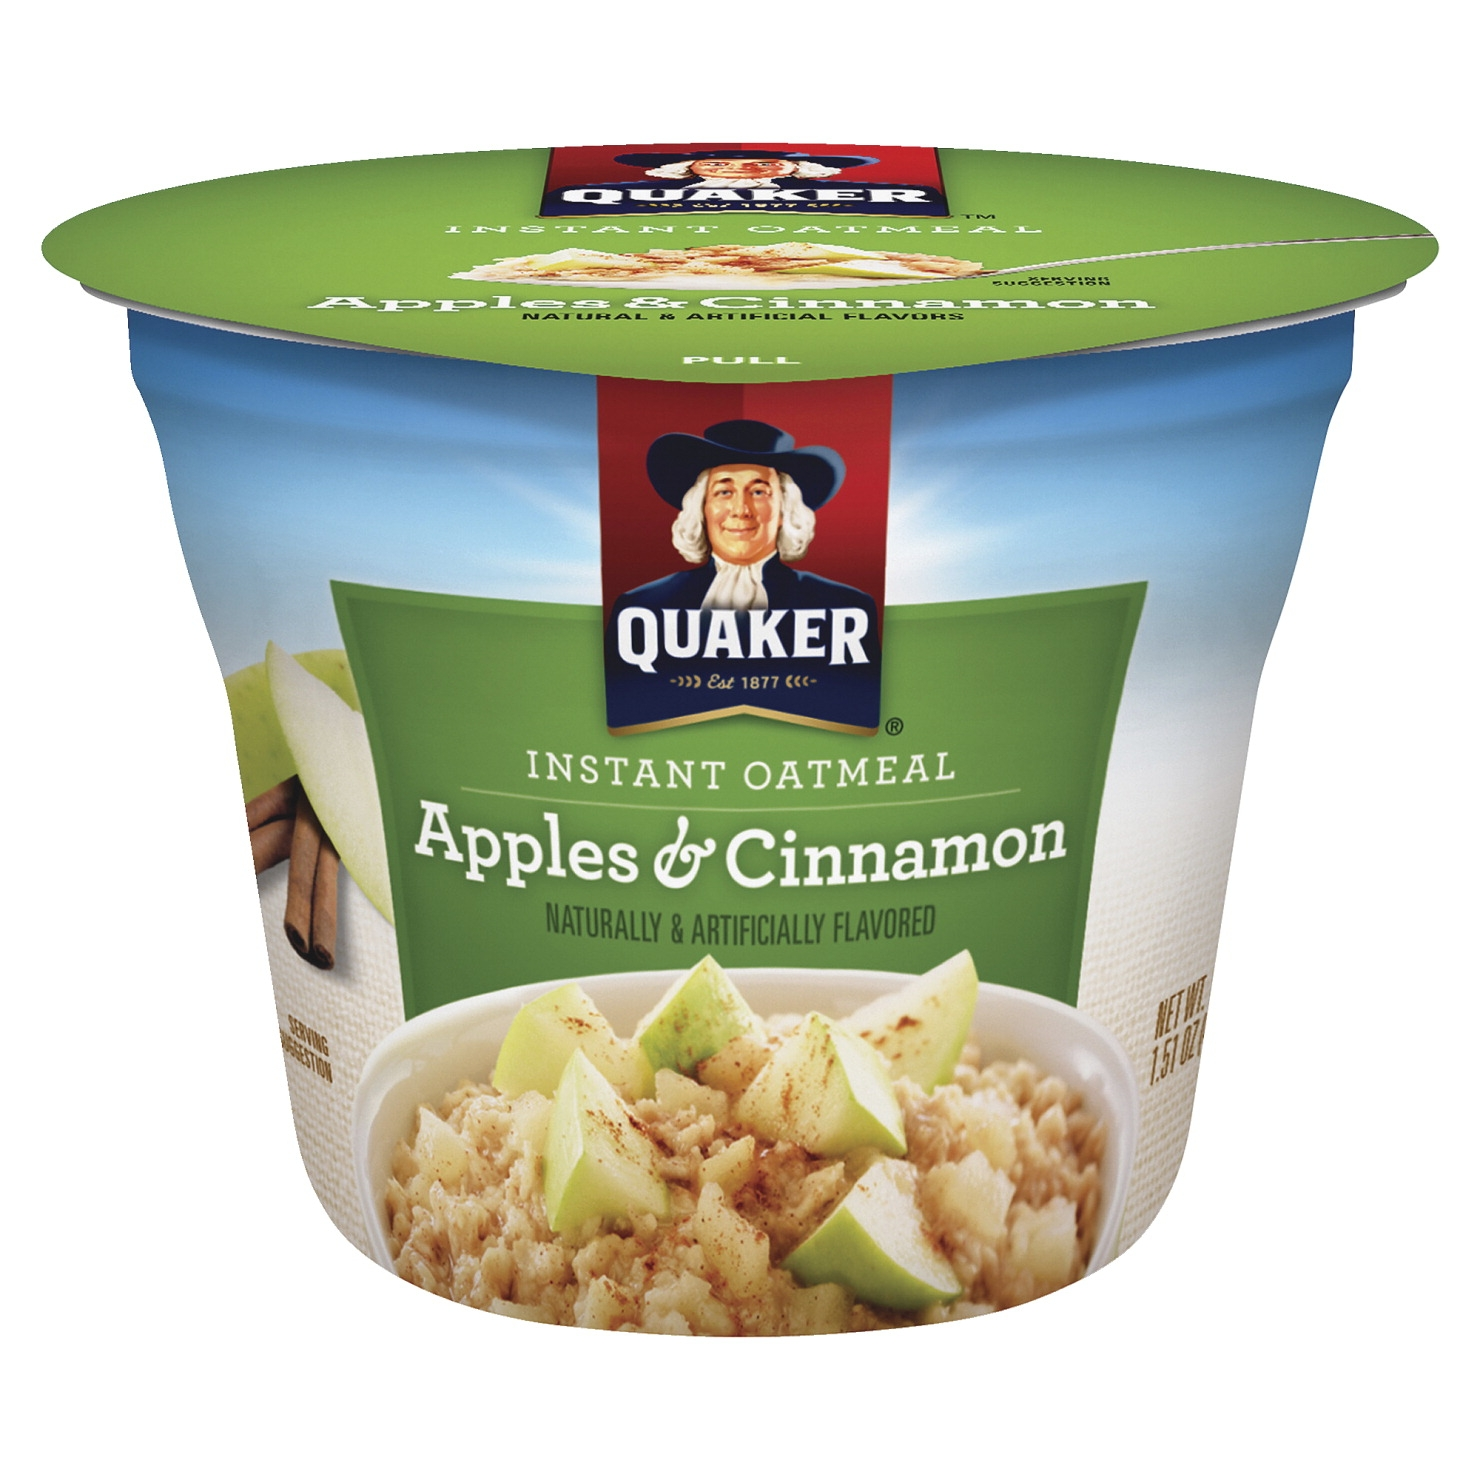 Quaker Foods Apple Cinnamon Instant Oatmeal Cup; Apple Cinnamon; Single Serve; 24 Per Carton - 1499461 - Baseball And Softball Baseball Athletic Supporter Cups 1499461